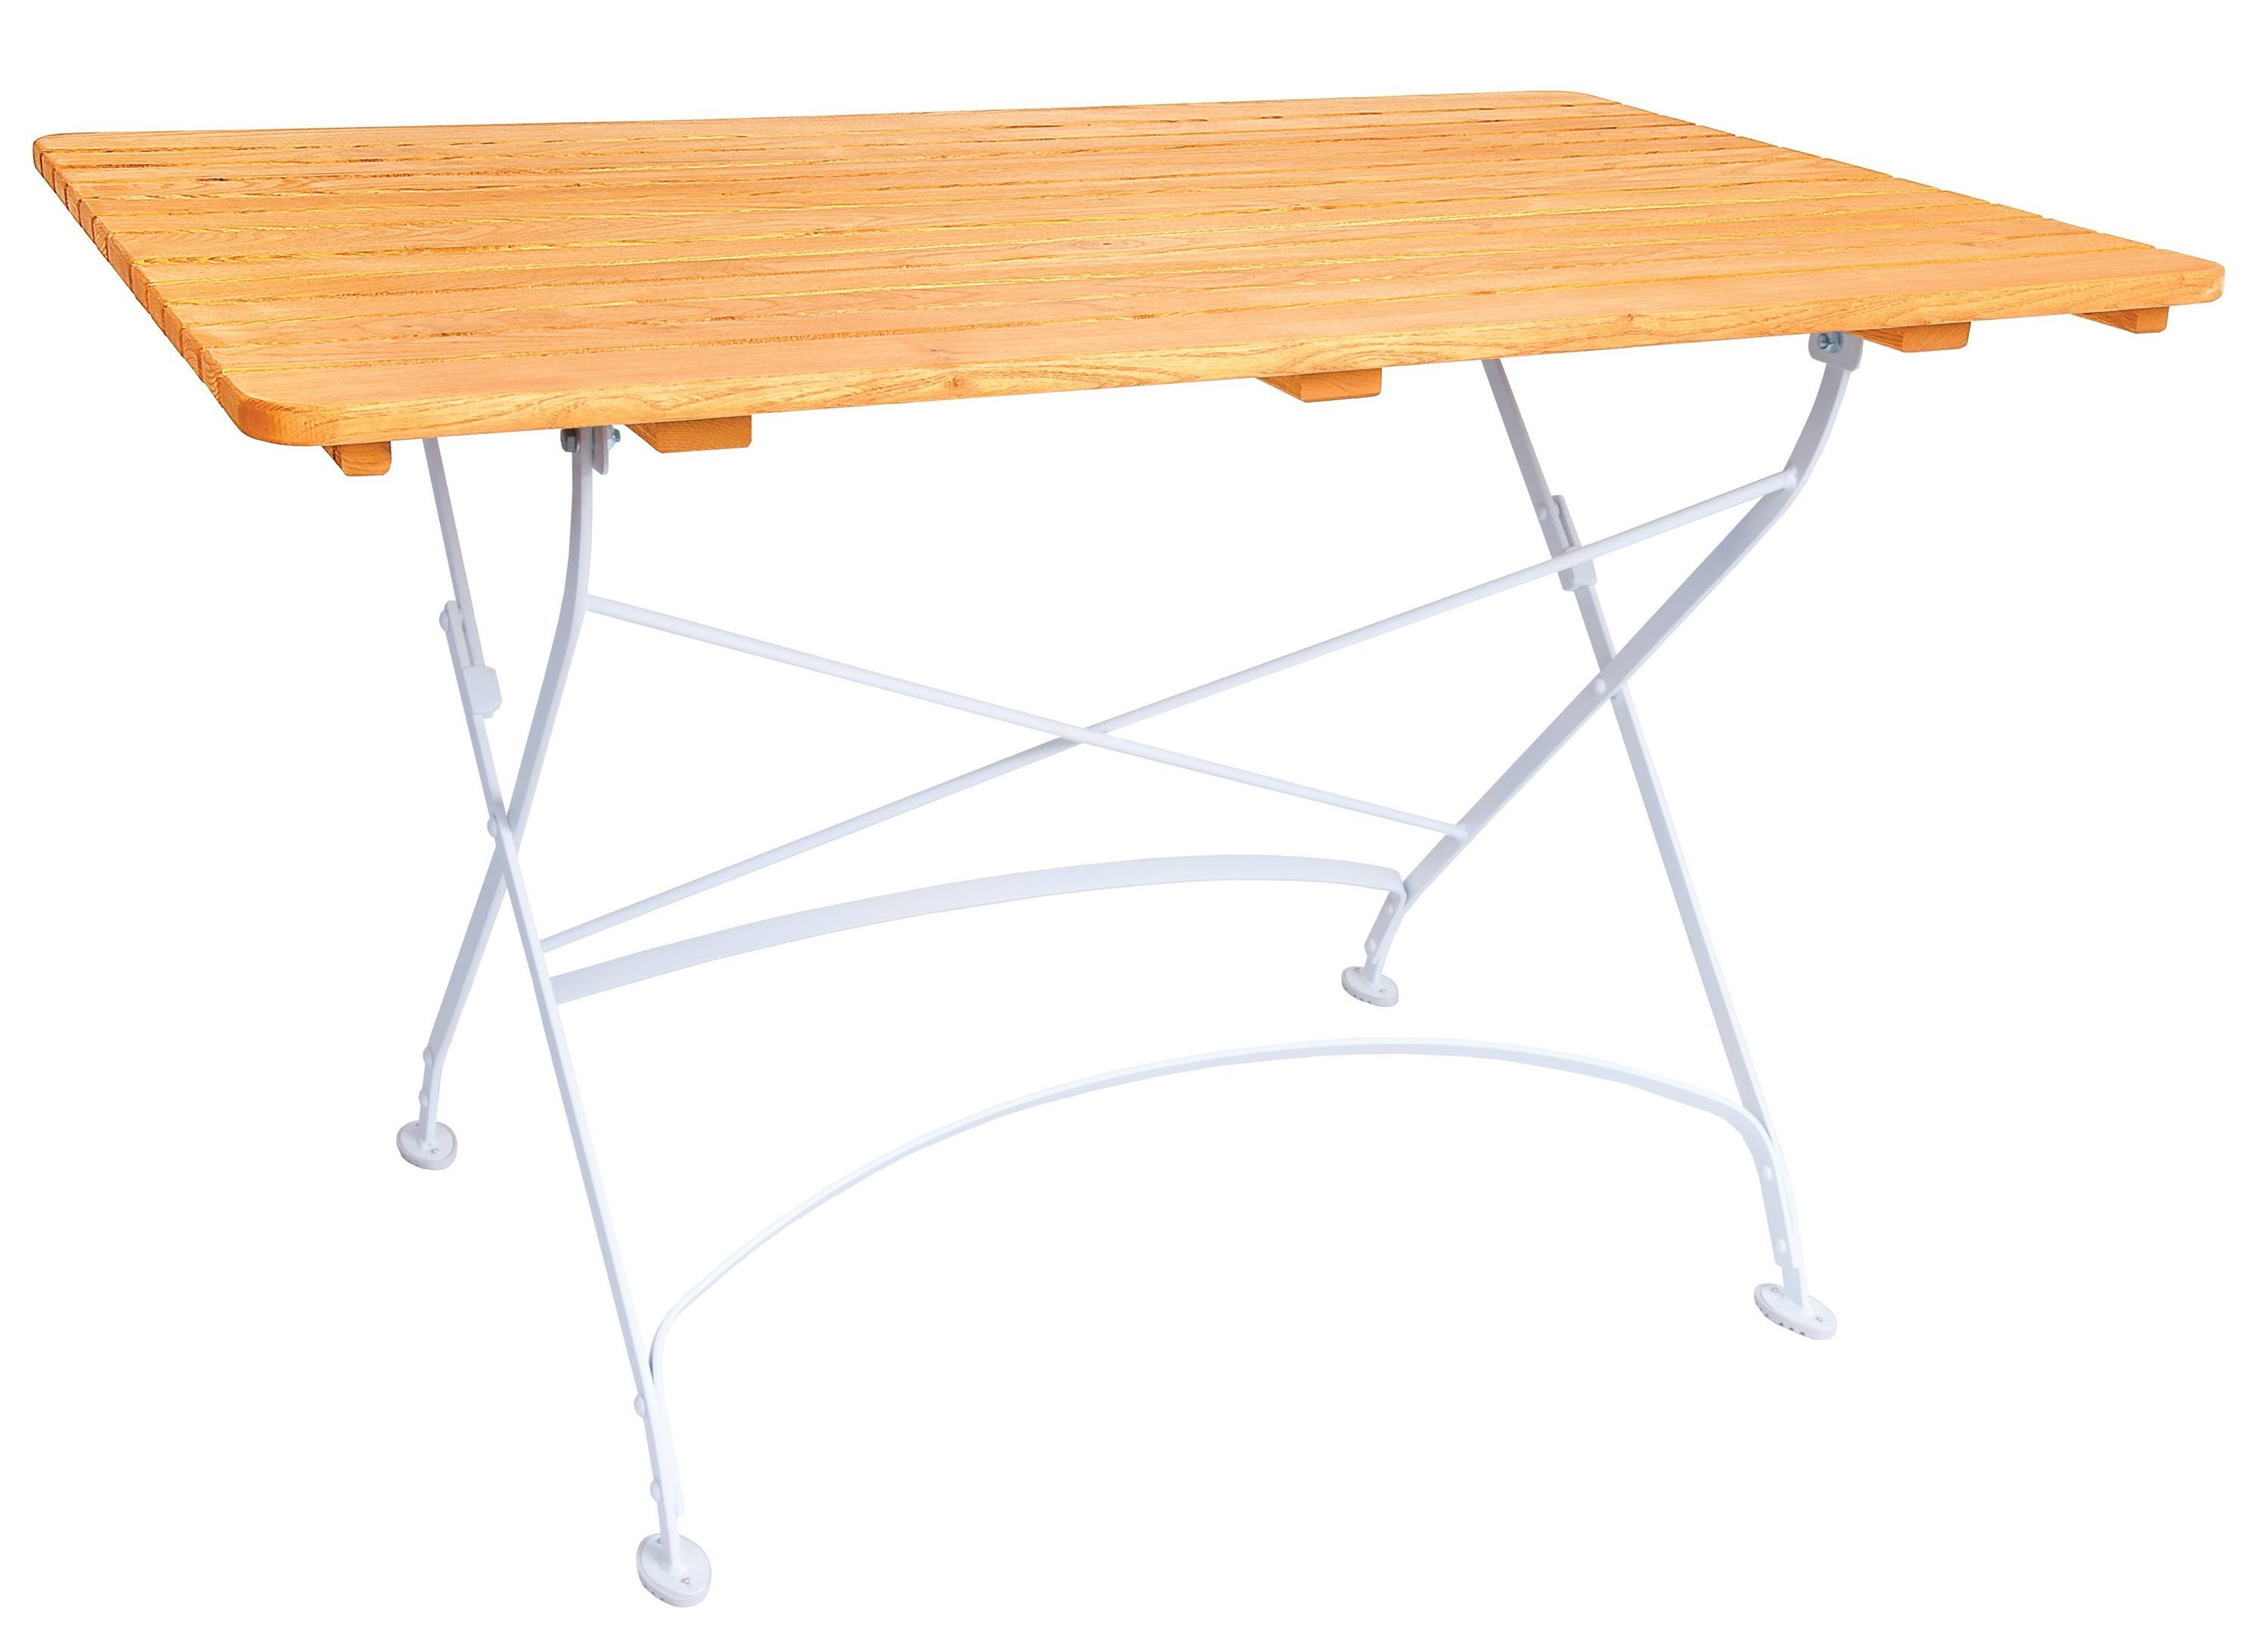 <p>Outdoor Furniture – Metal & Wooden Dining Collection – Creta Table.</p> <p> </p> <p>Creta Furniture table with honey coloured hardwood tabletop with gently curved metal shaped frame</p> <p> </p> <p>Ideally suited for either indoor or outdoor relaxed dining location in pubs or restaurants or more intimate café bistro al fresco area or for events requiring easy to fold and store furniture</p>